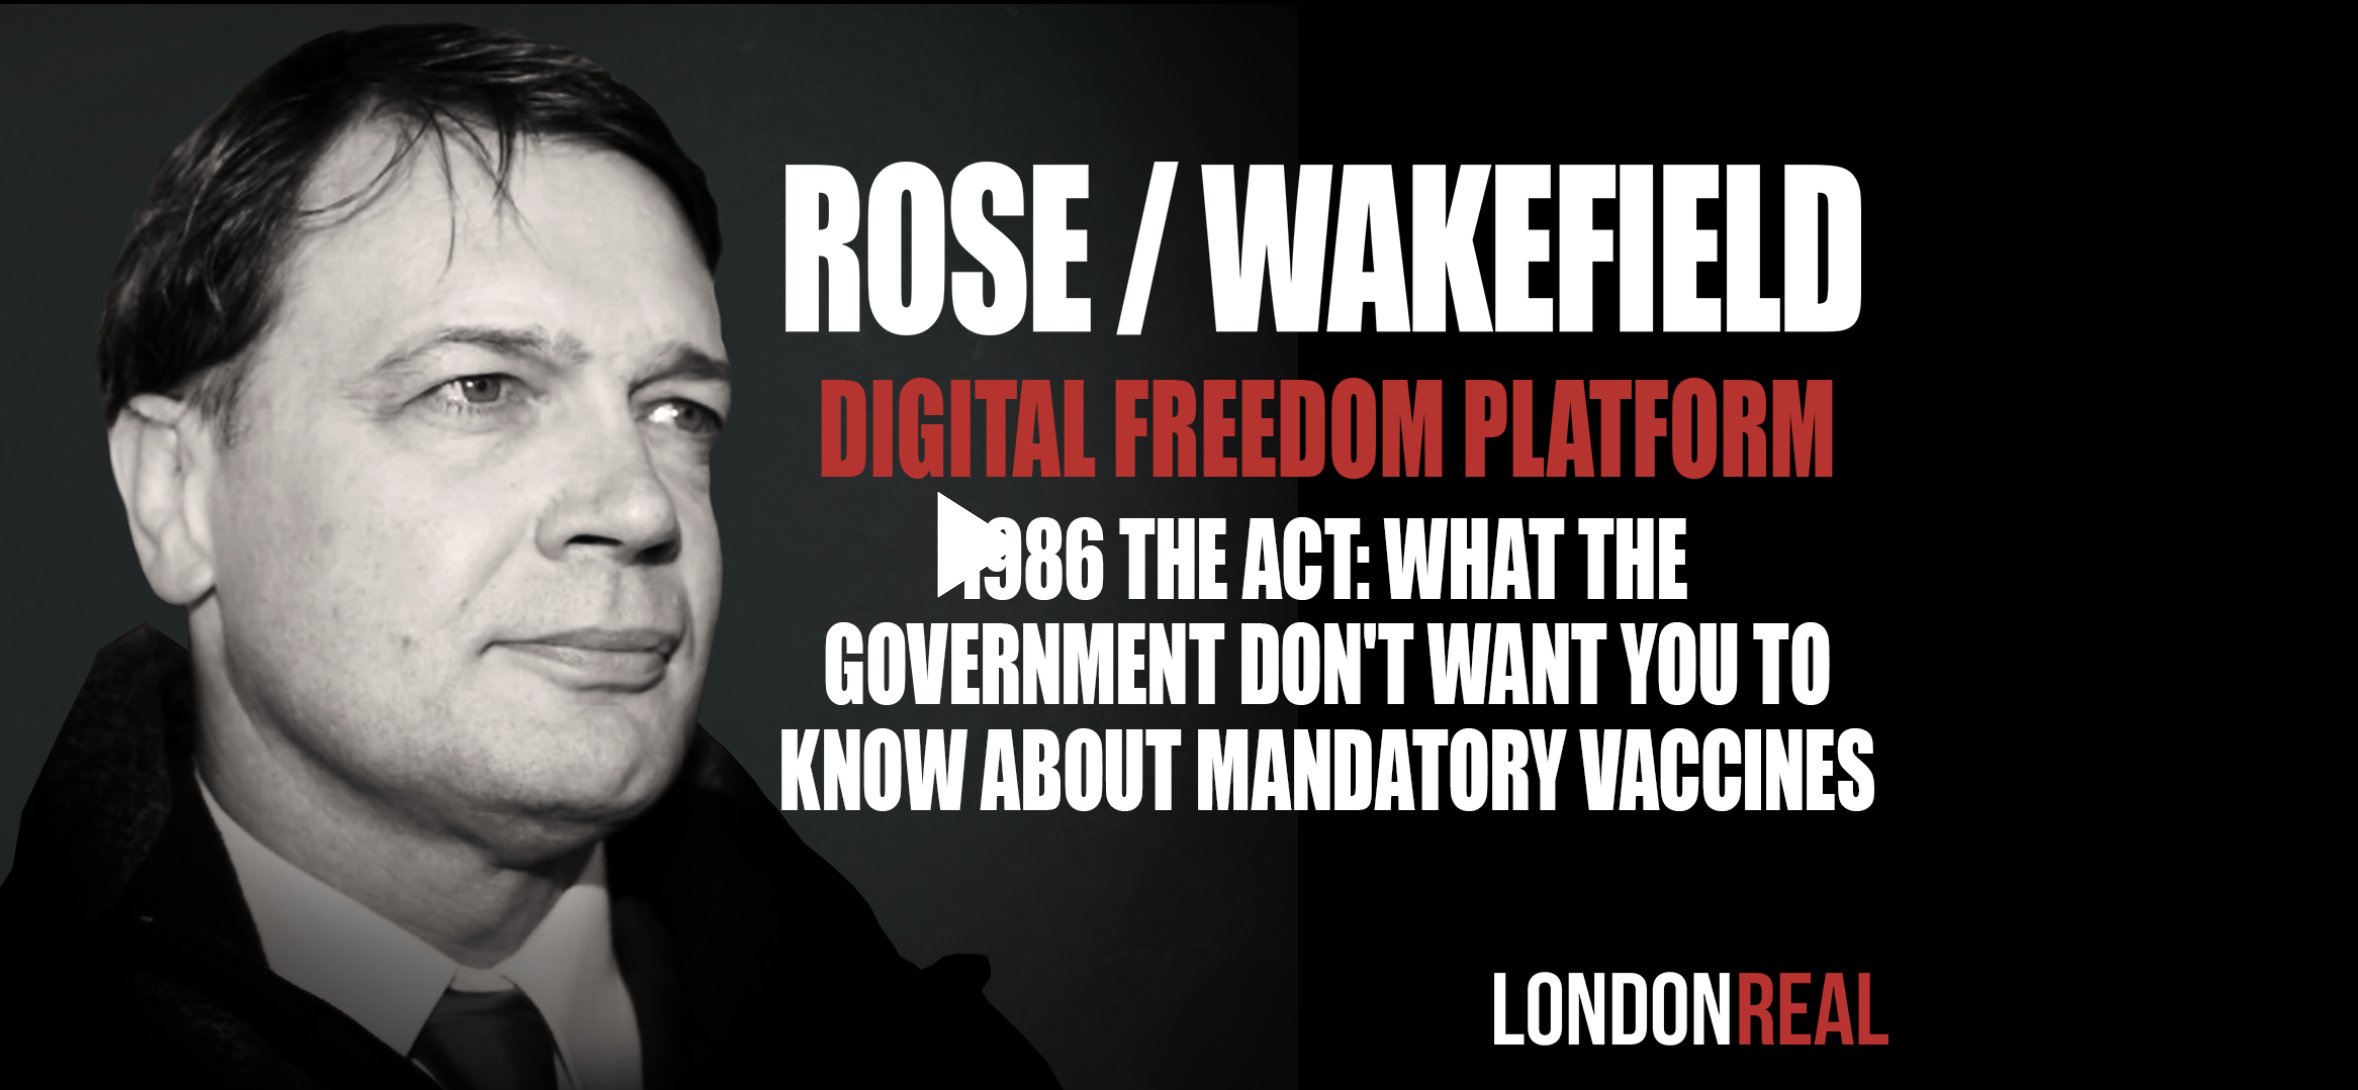 Dr Andrew Wakefield – 1986 The Act: What The Government Don't Want You To Now About Mandatory Vaccines